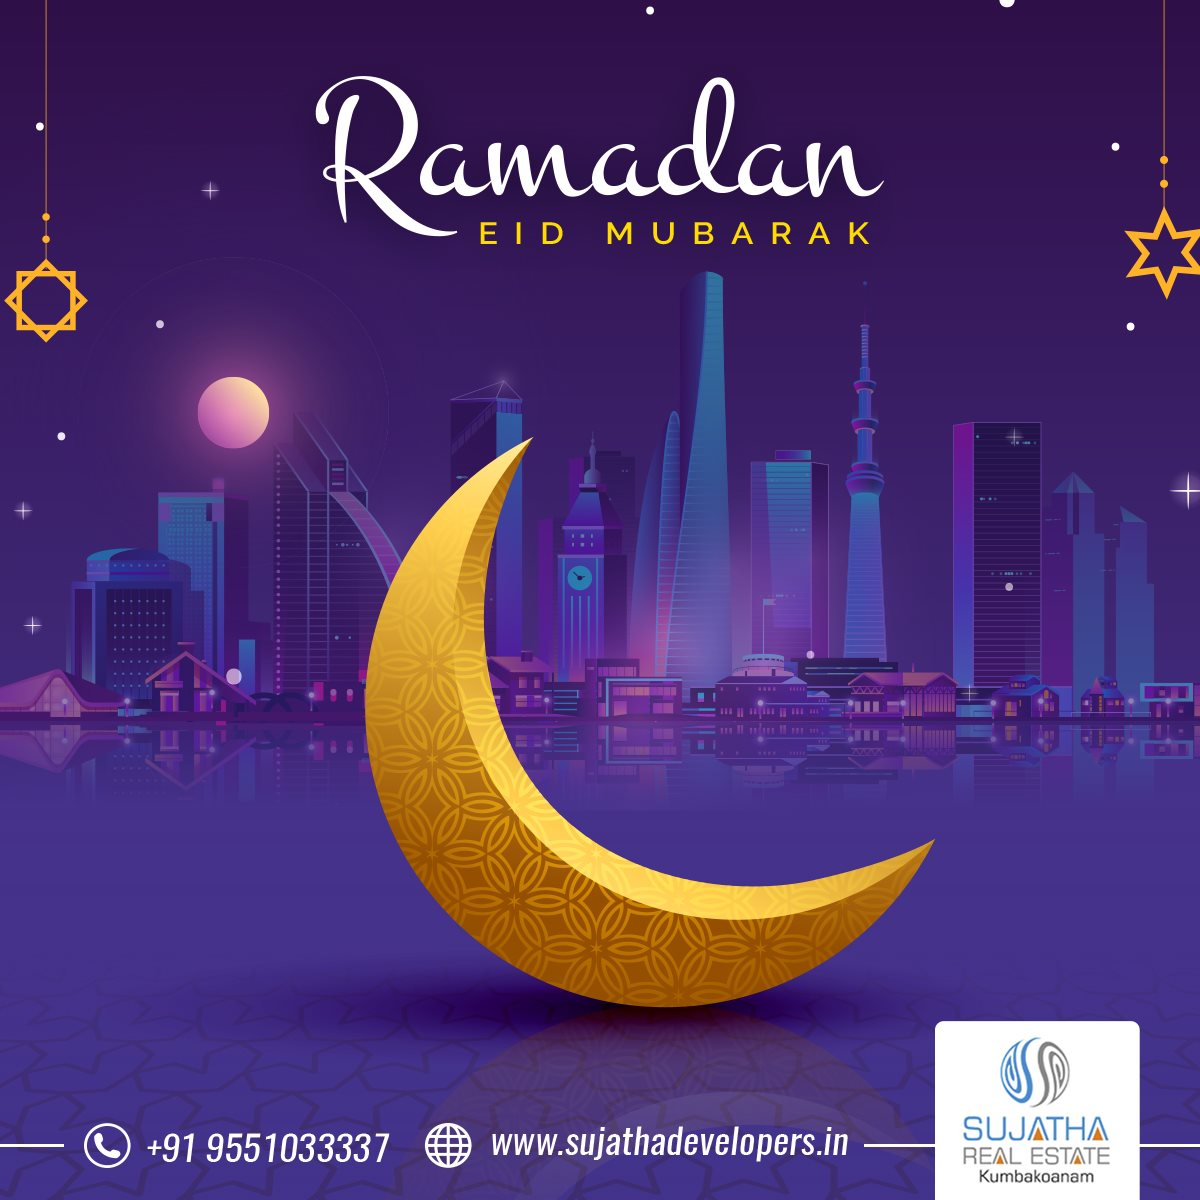 Wishing a very happy Ramadan. Let it inspire you all with courage and strength that will help you all to win every challenge of life!  #Ramdanwishes #ramdan2020 #sujathadevelopers #plotspromoters  #property #investment #realestateinvestor #realestateagent #dreamhome #kumbakonam https://t.co/JSepS8nYq4